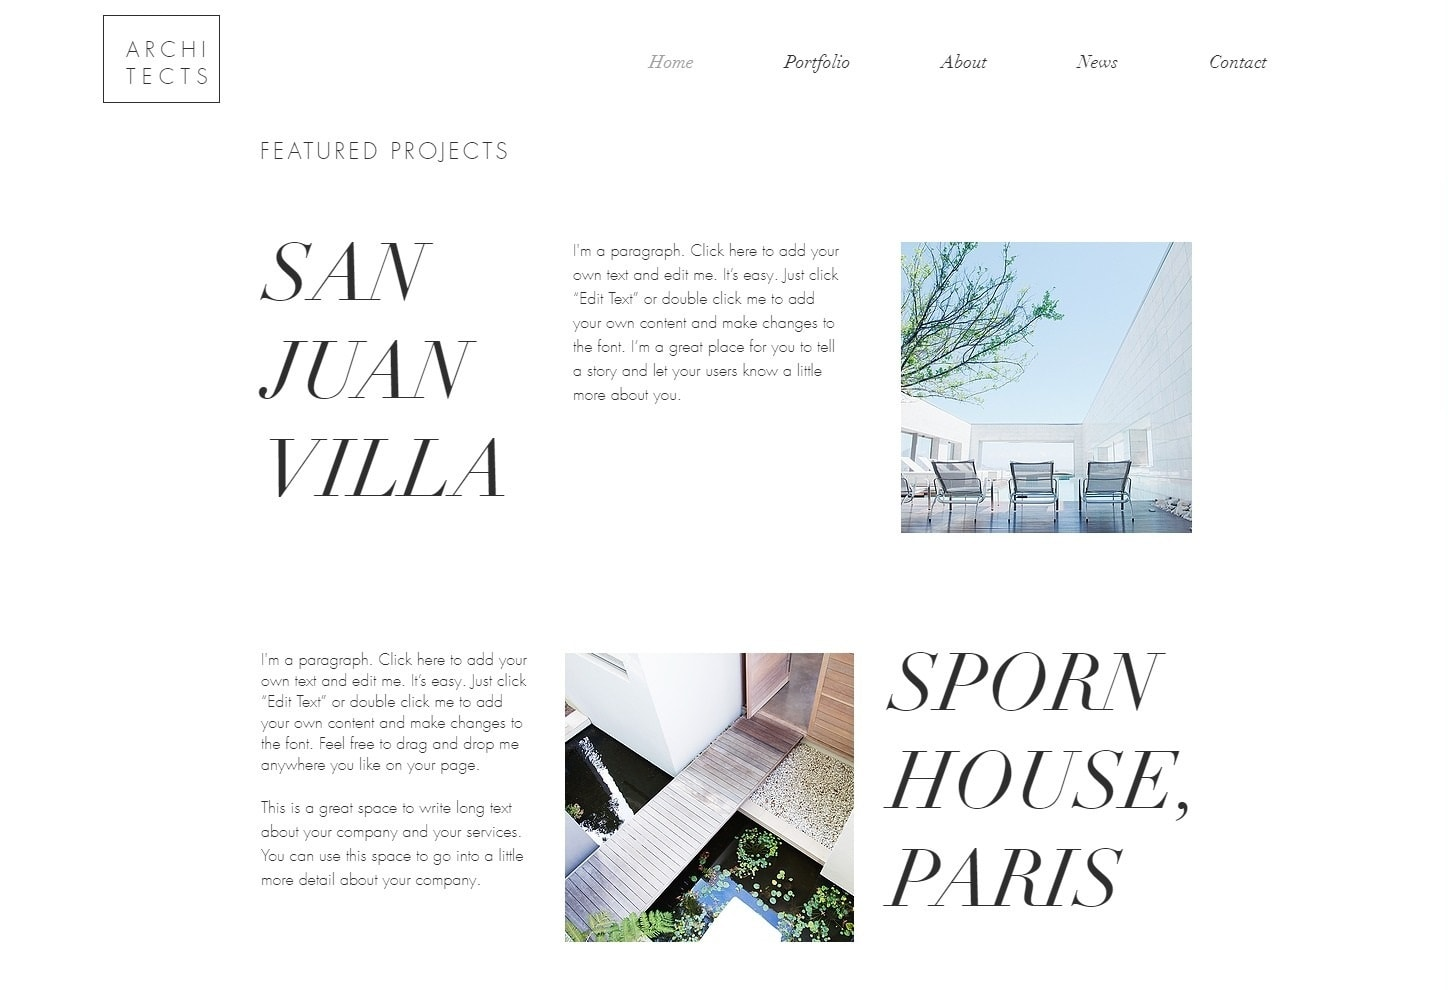 6 Best Wix Real Estate Templates (+2 Worst)-image2